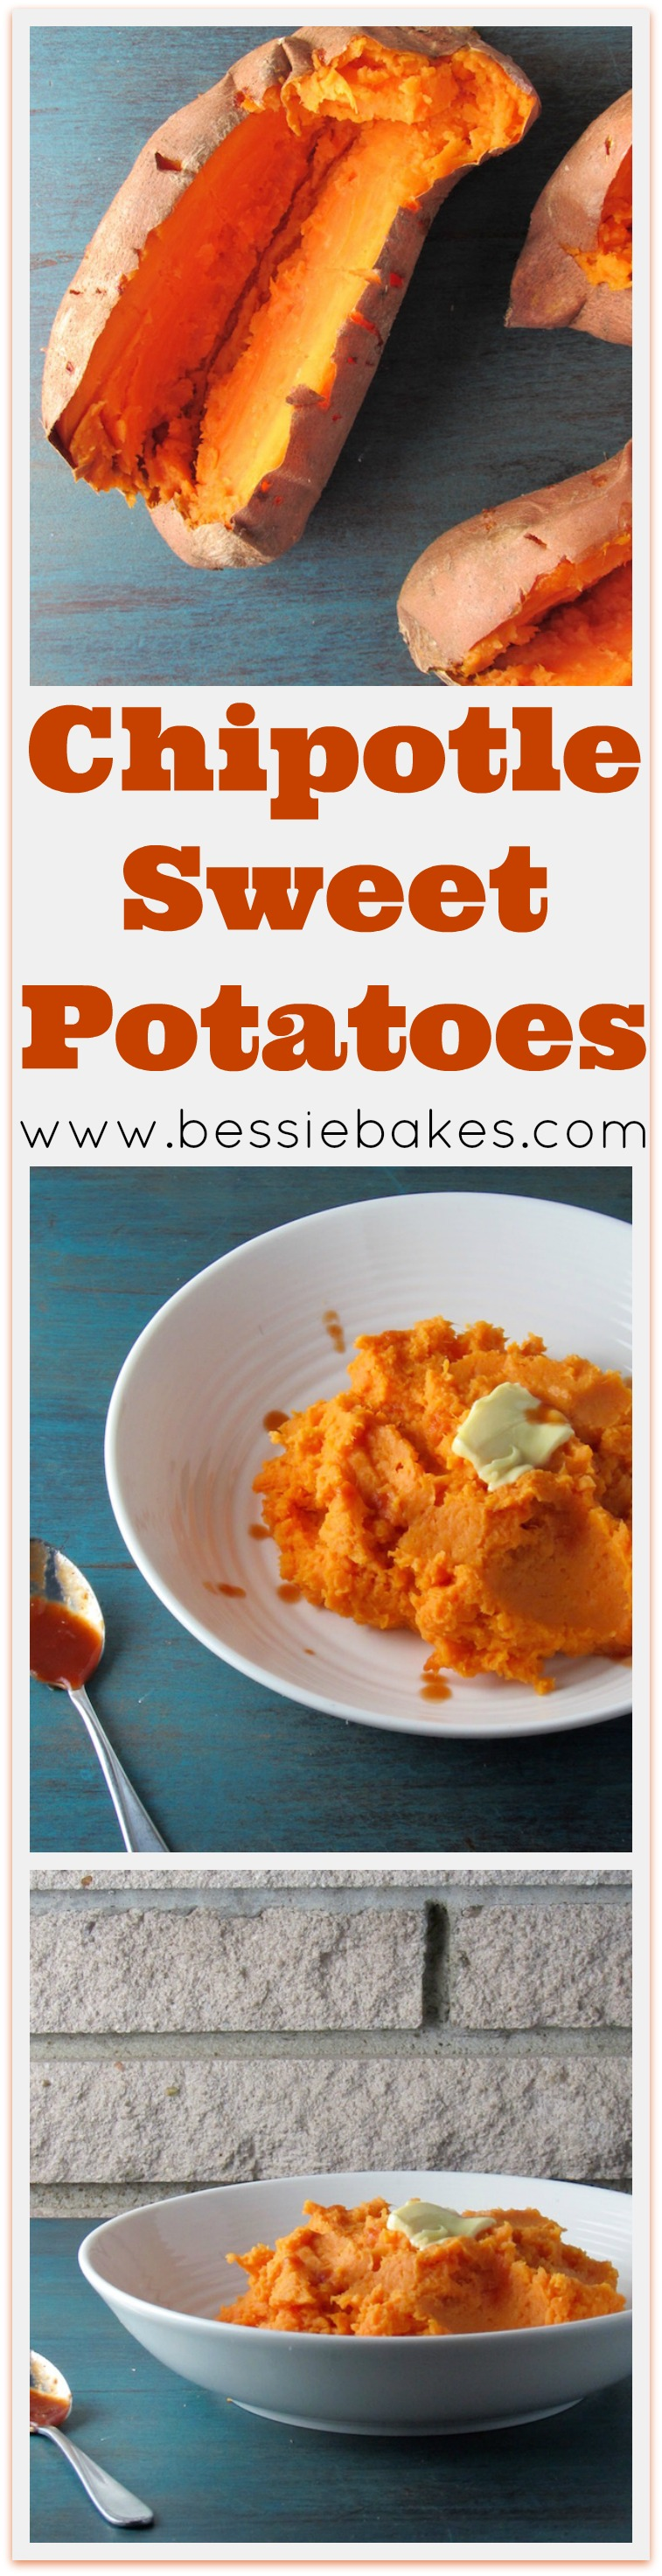 Chipotle Sweet Potatoes Pinterest